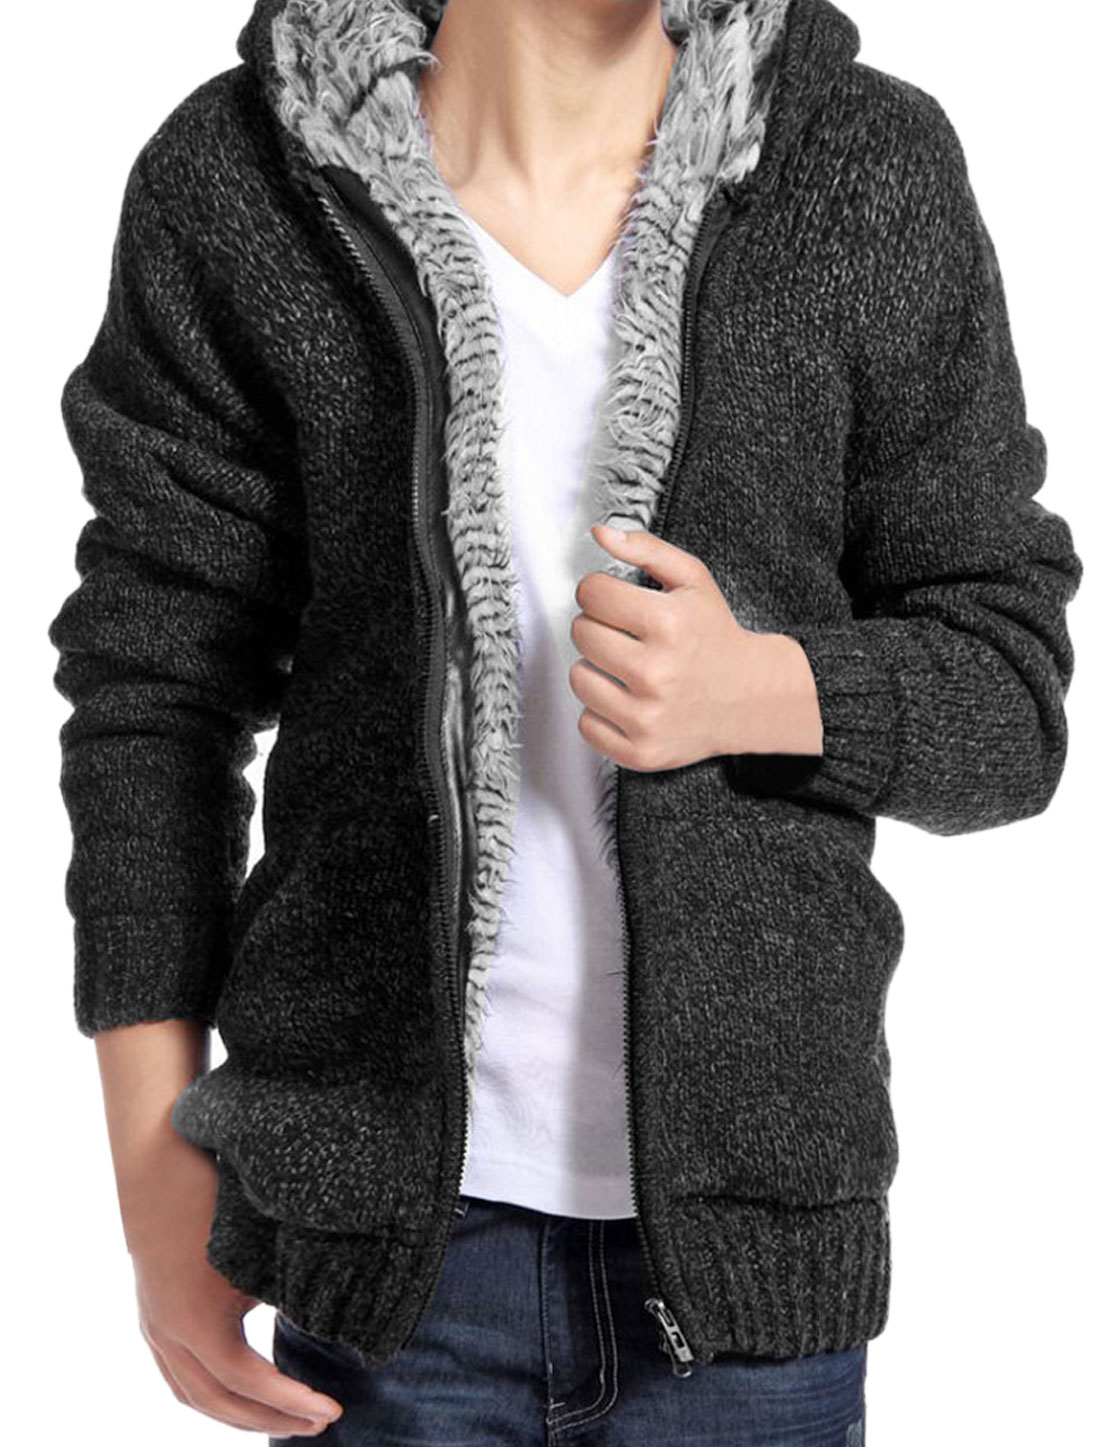 Men Long Sleeves Zip Up Inner Fleece Black White Sweater Hoodie M